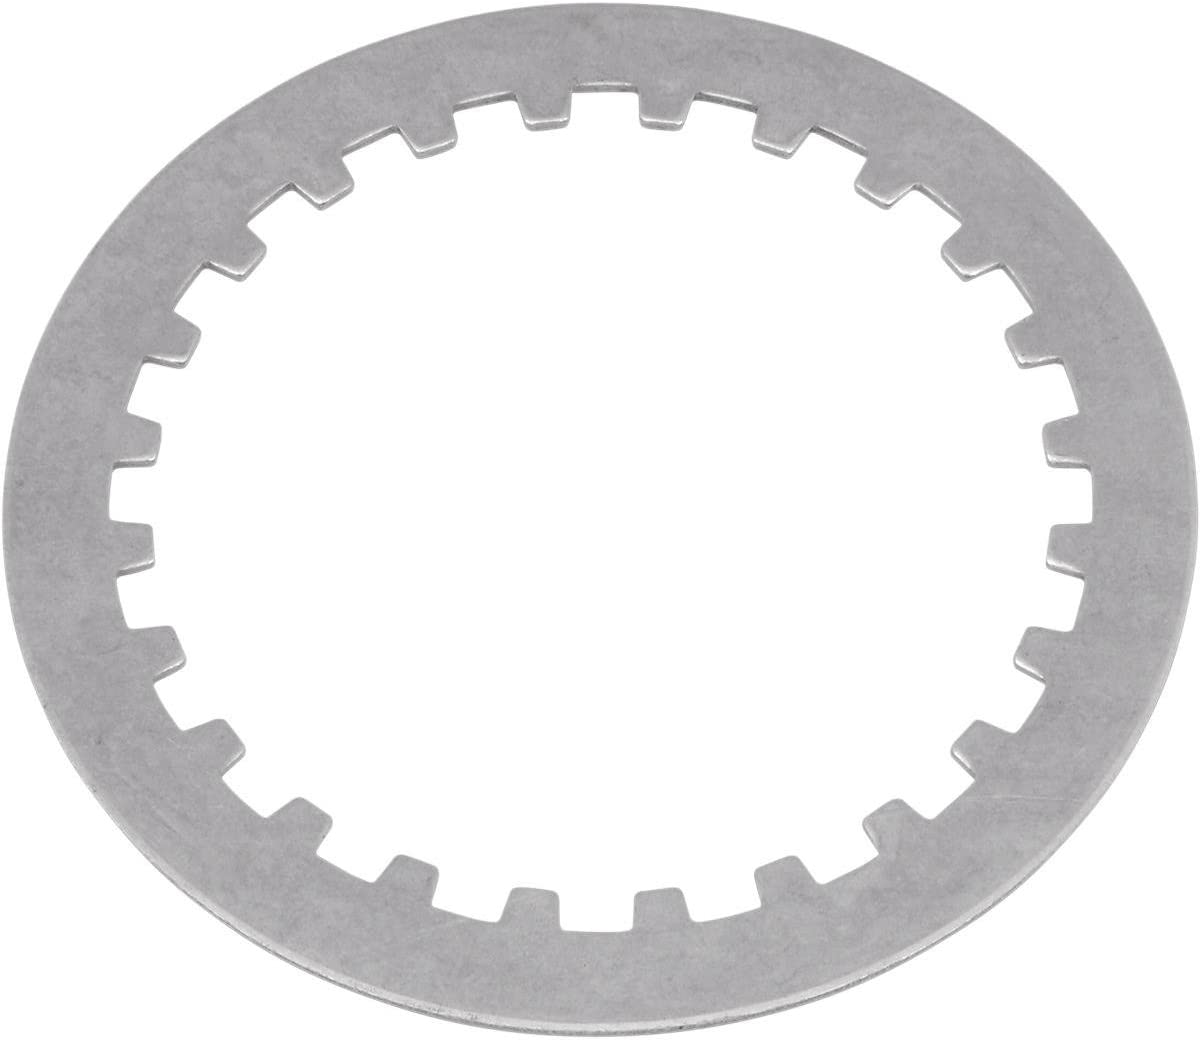 Kg Clutch Factory Steel Plate Drive Kgsp-302 Max 47% OFF 5 popular